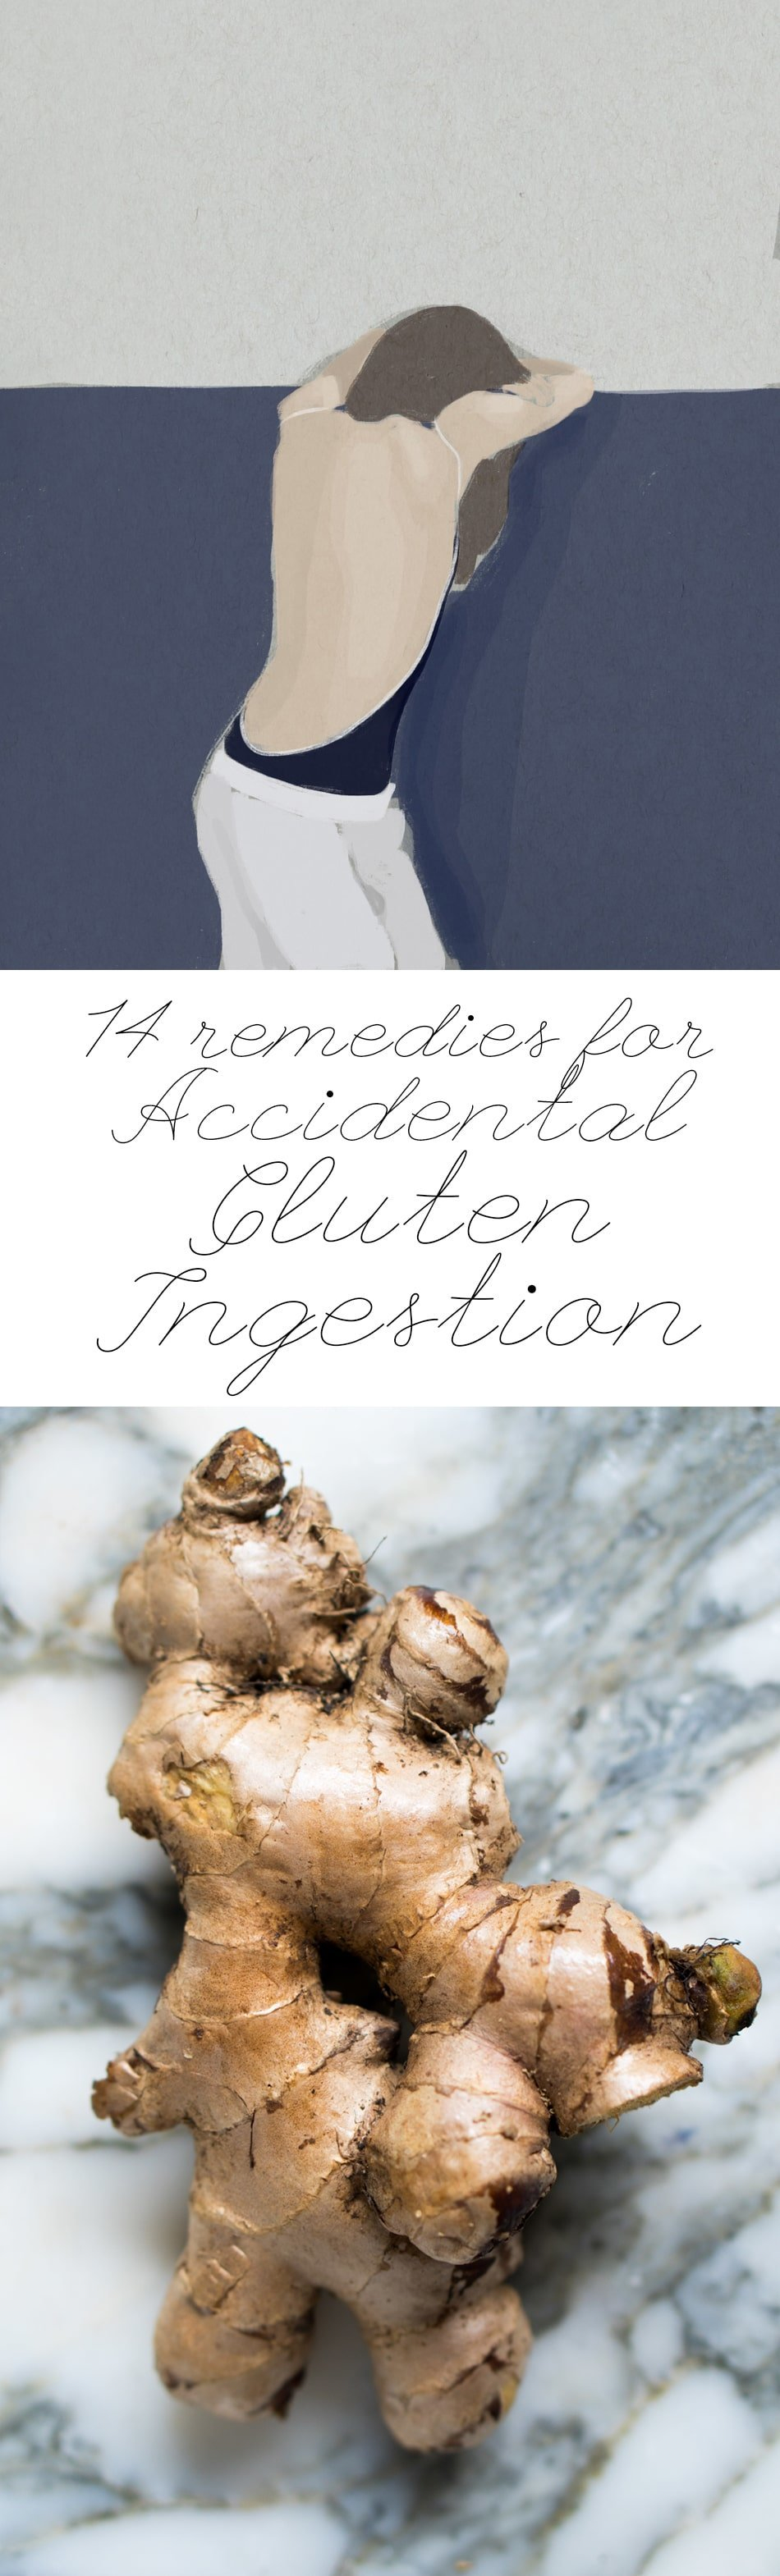 14 Home Remedies To Try After Accidental Gluten Ingestion ??